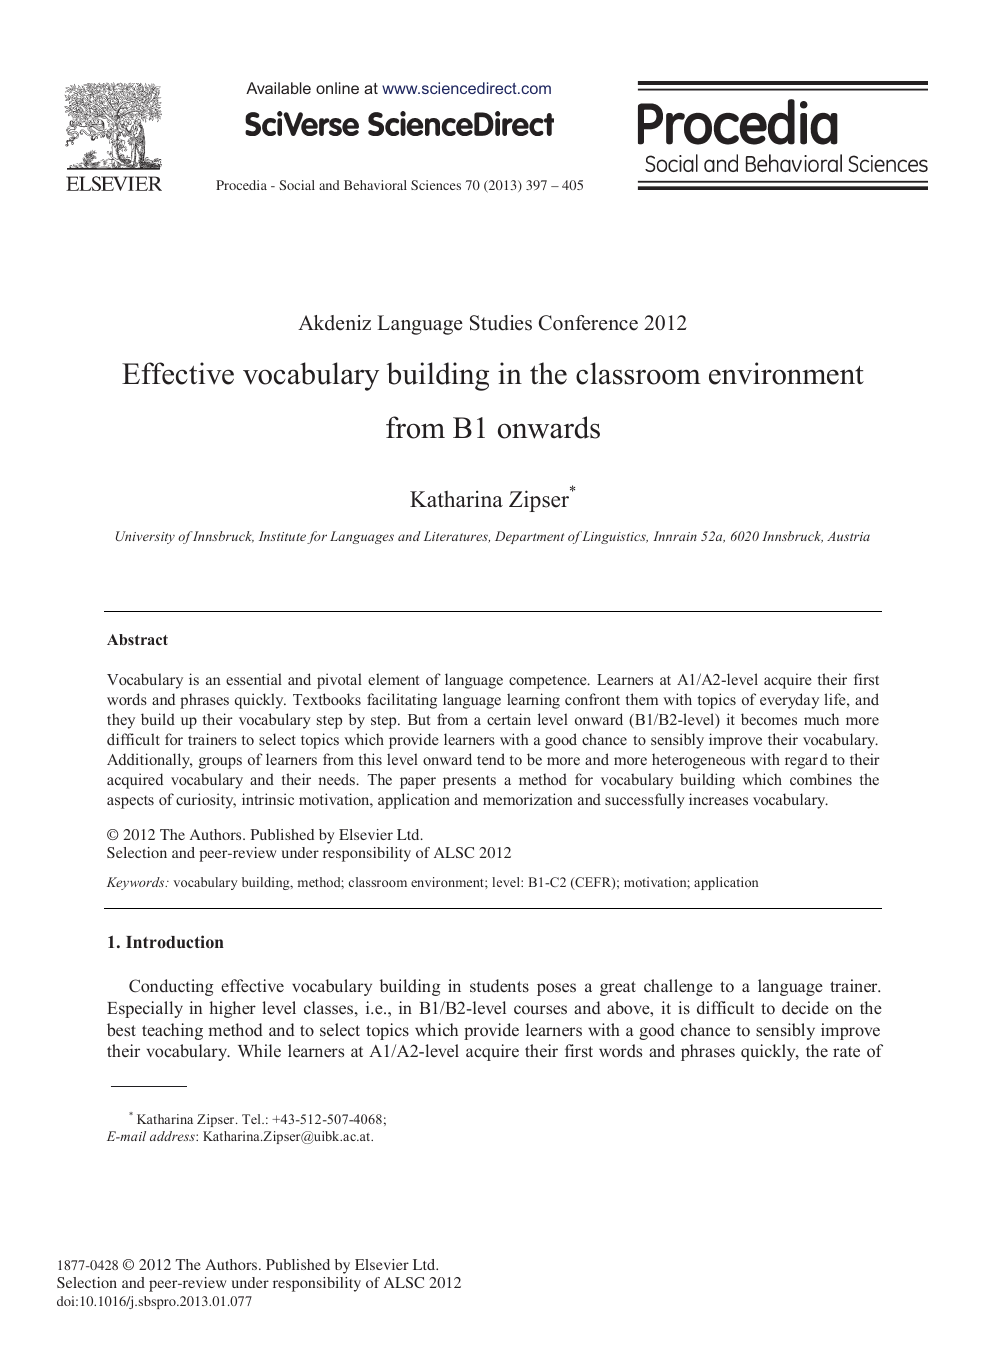 Effective Vocabulary Building in the Classroom Environment